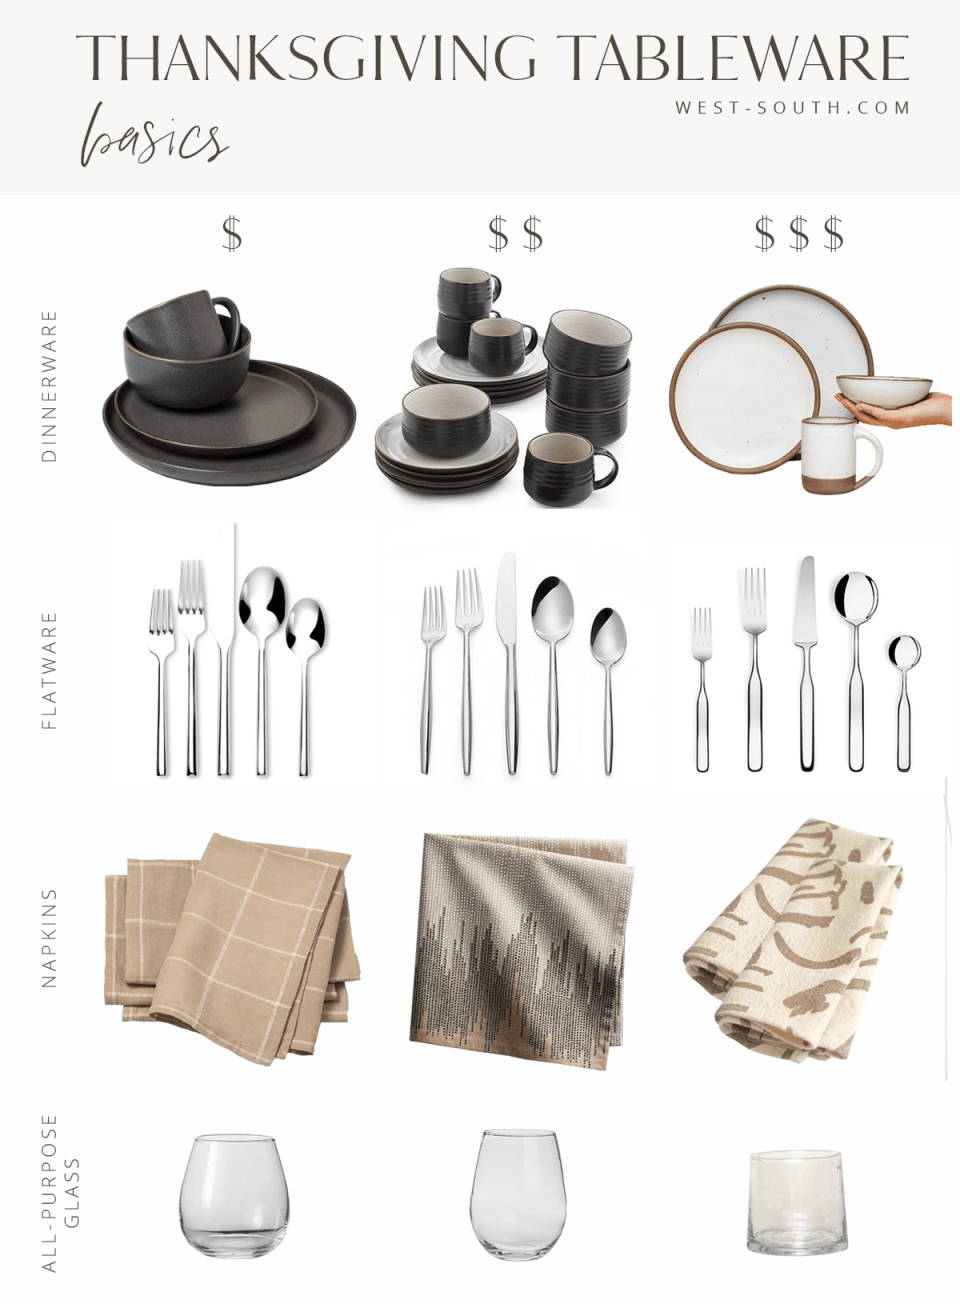 grid image of thanksgiving tableware basics like dinnerware, flatware, glassware and cloth napkins arranged by price point